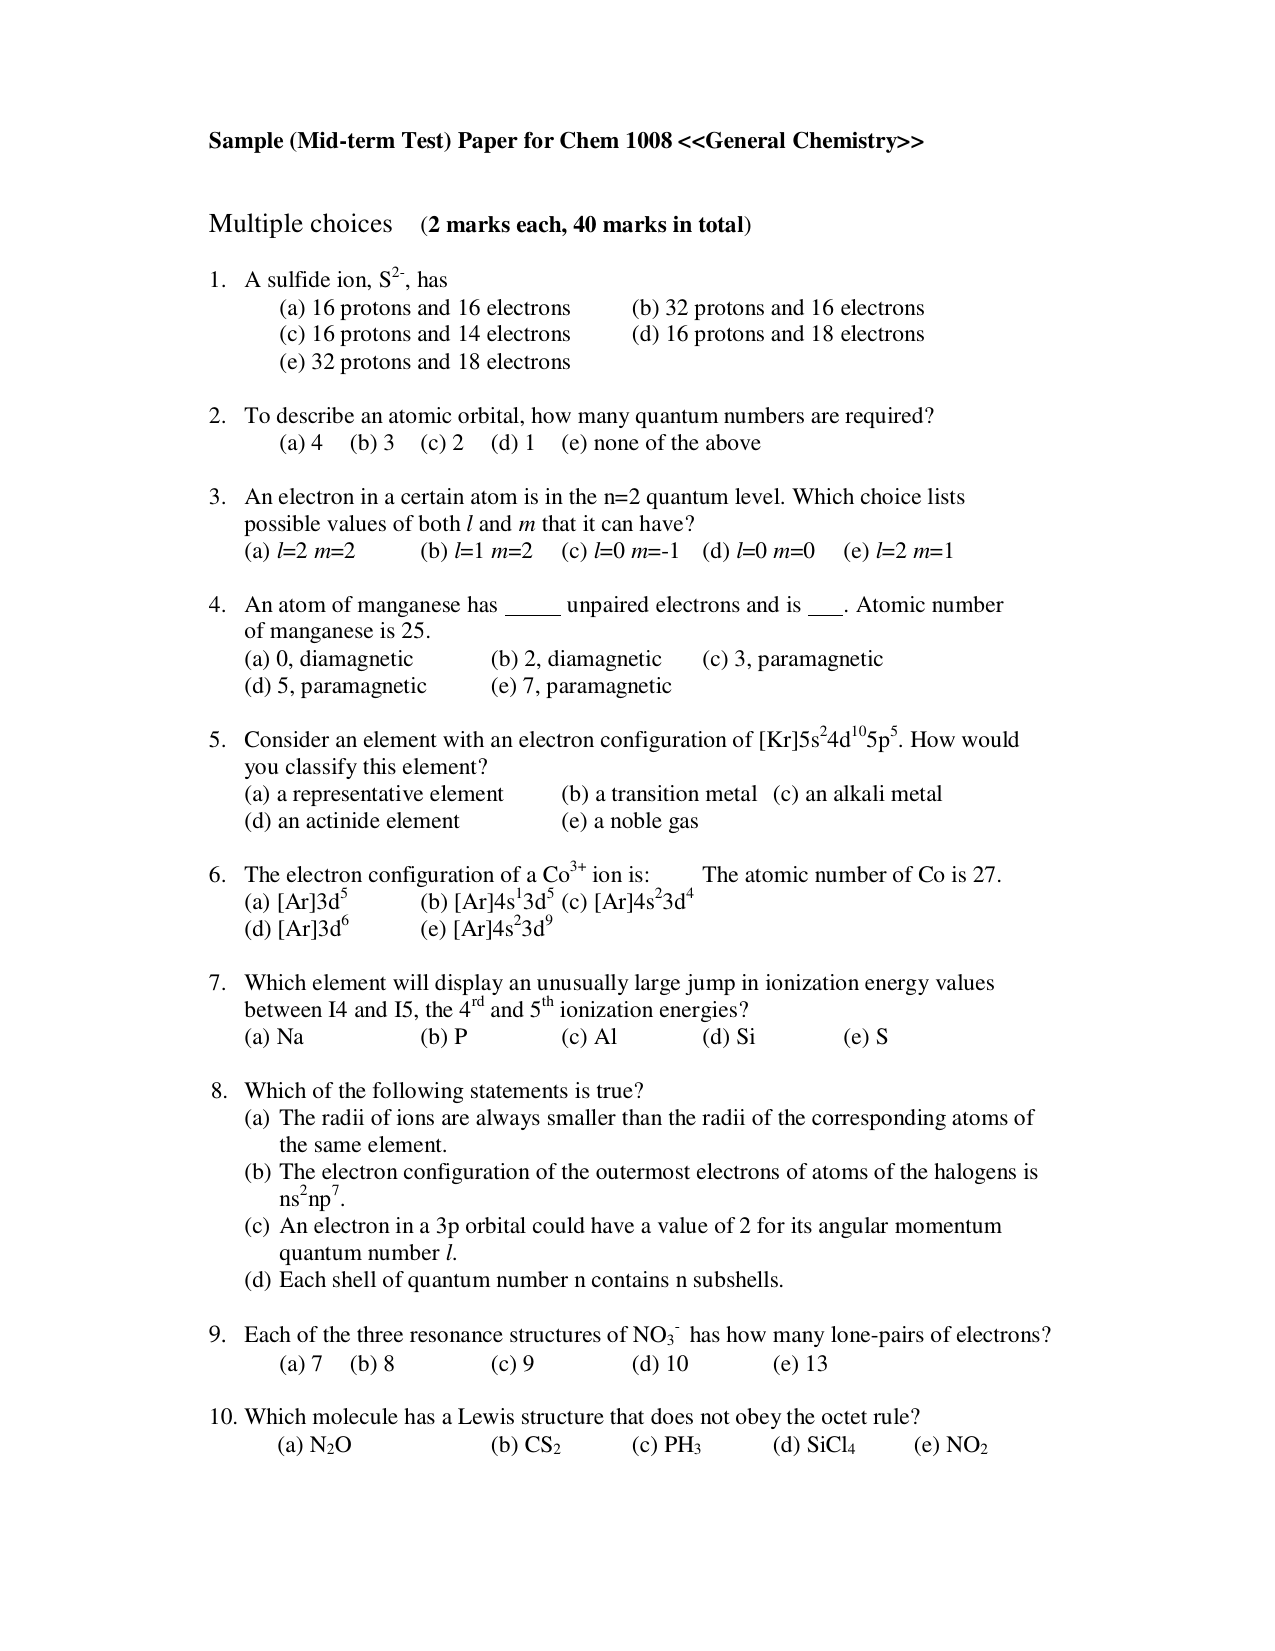 Sample mid term test paper for chem 1008 general chemistry pooptronica